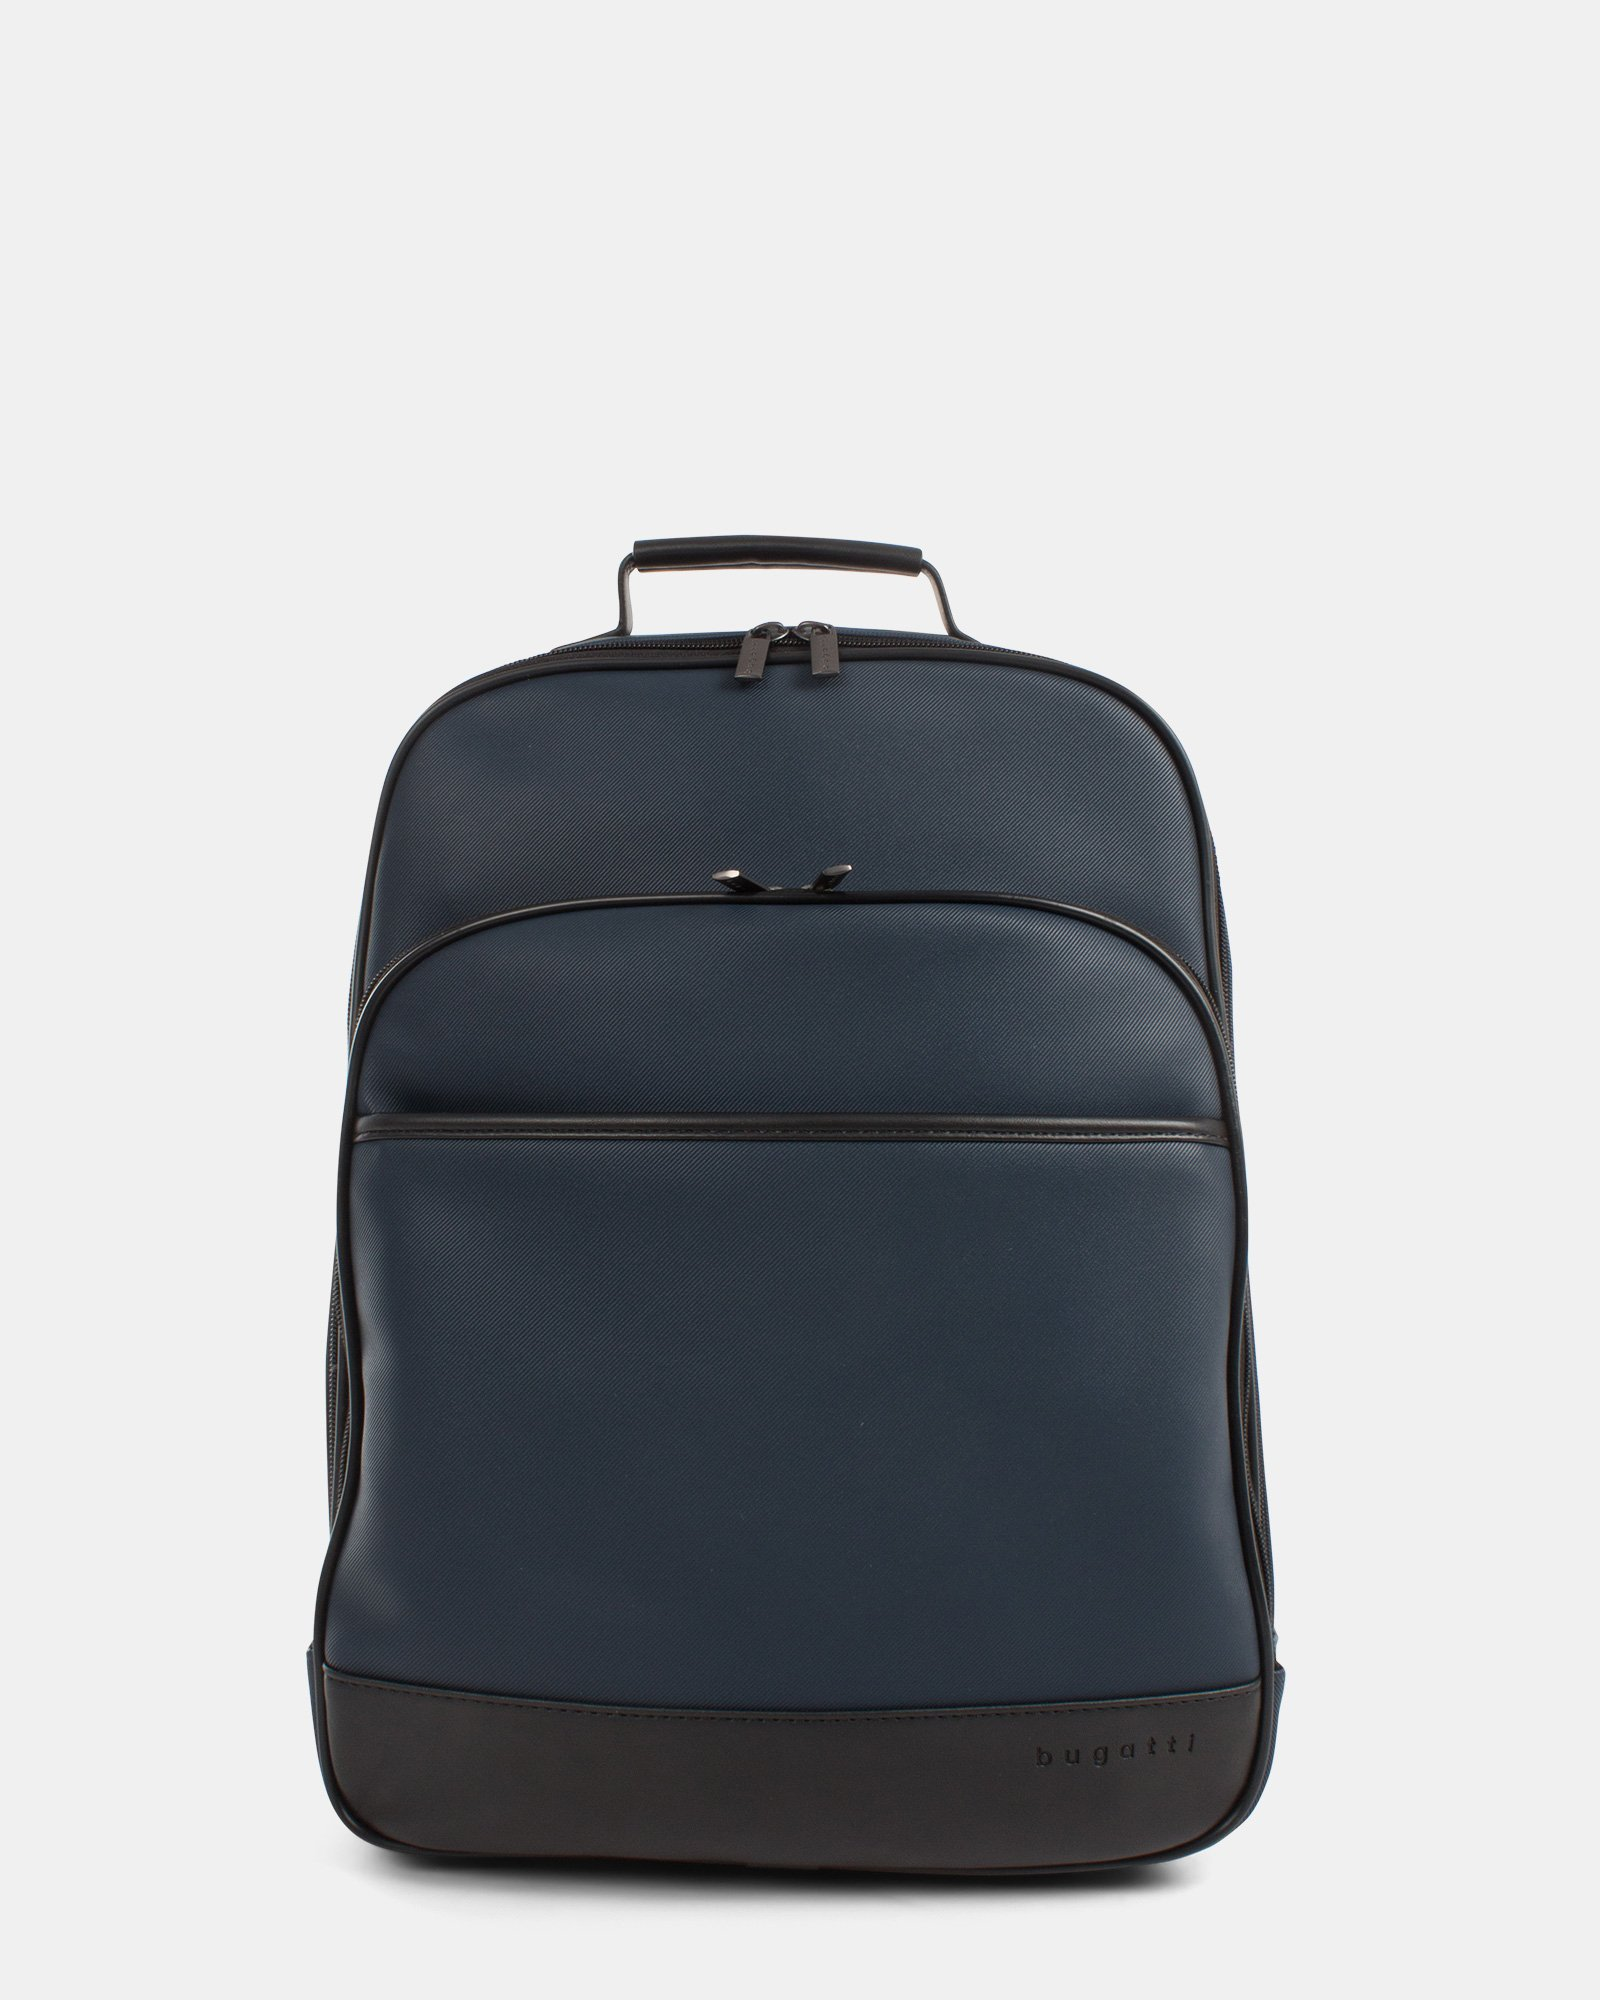 Gin & Twill - Backpack - Bugatti - Zoom